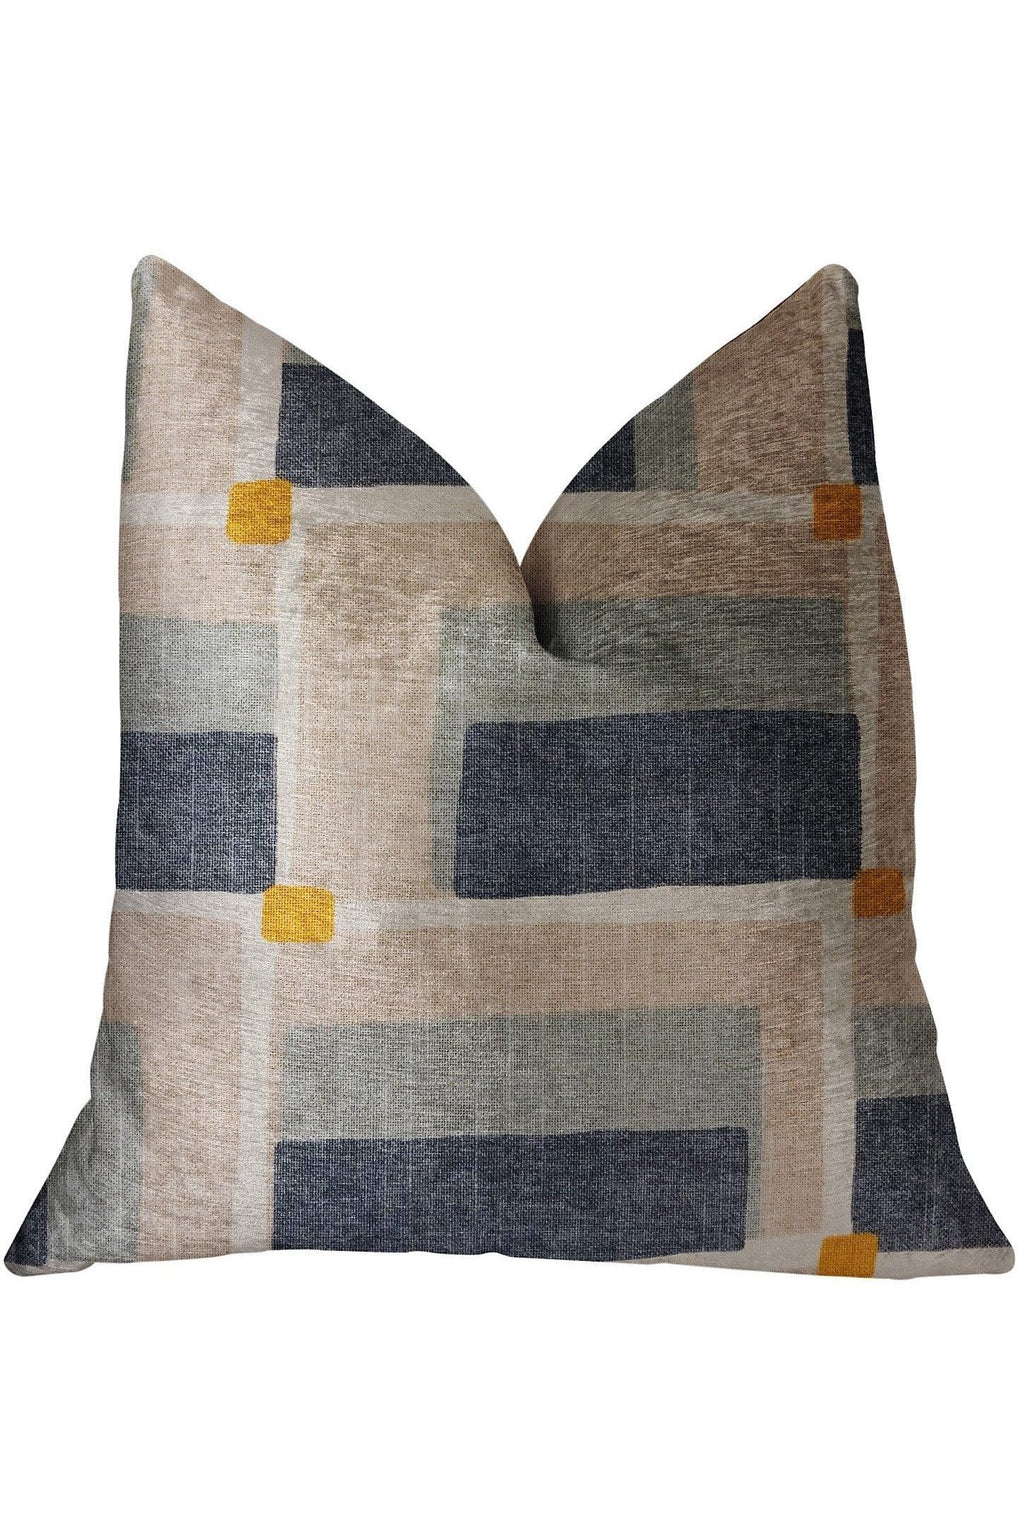 Bay Window Blue and Beige Luxury Throw Pillow - Himelhoch's